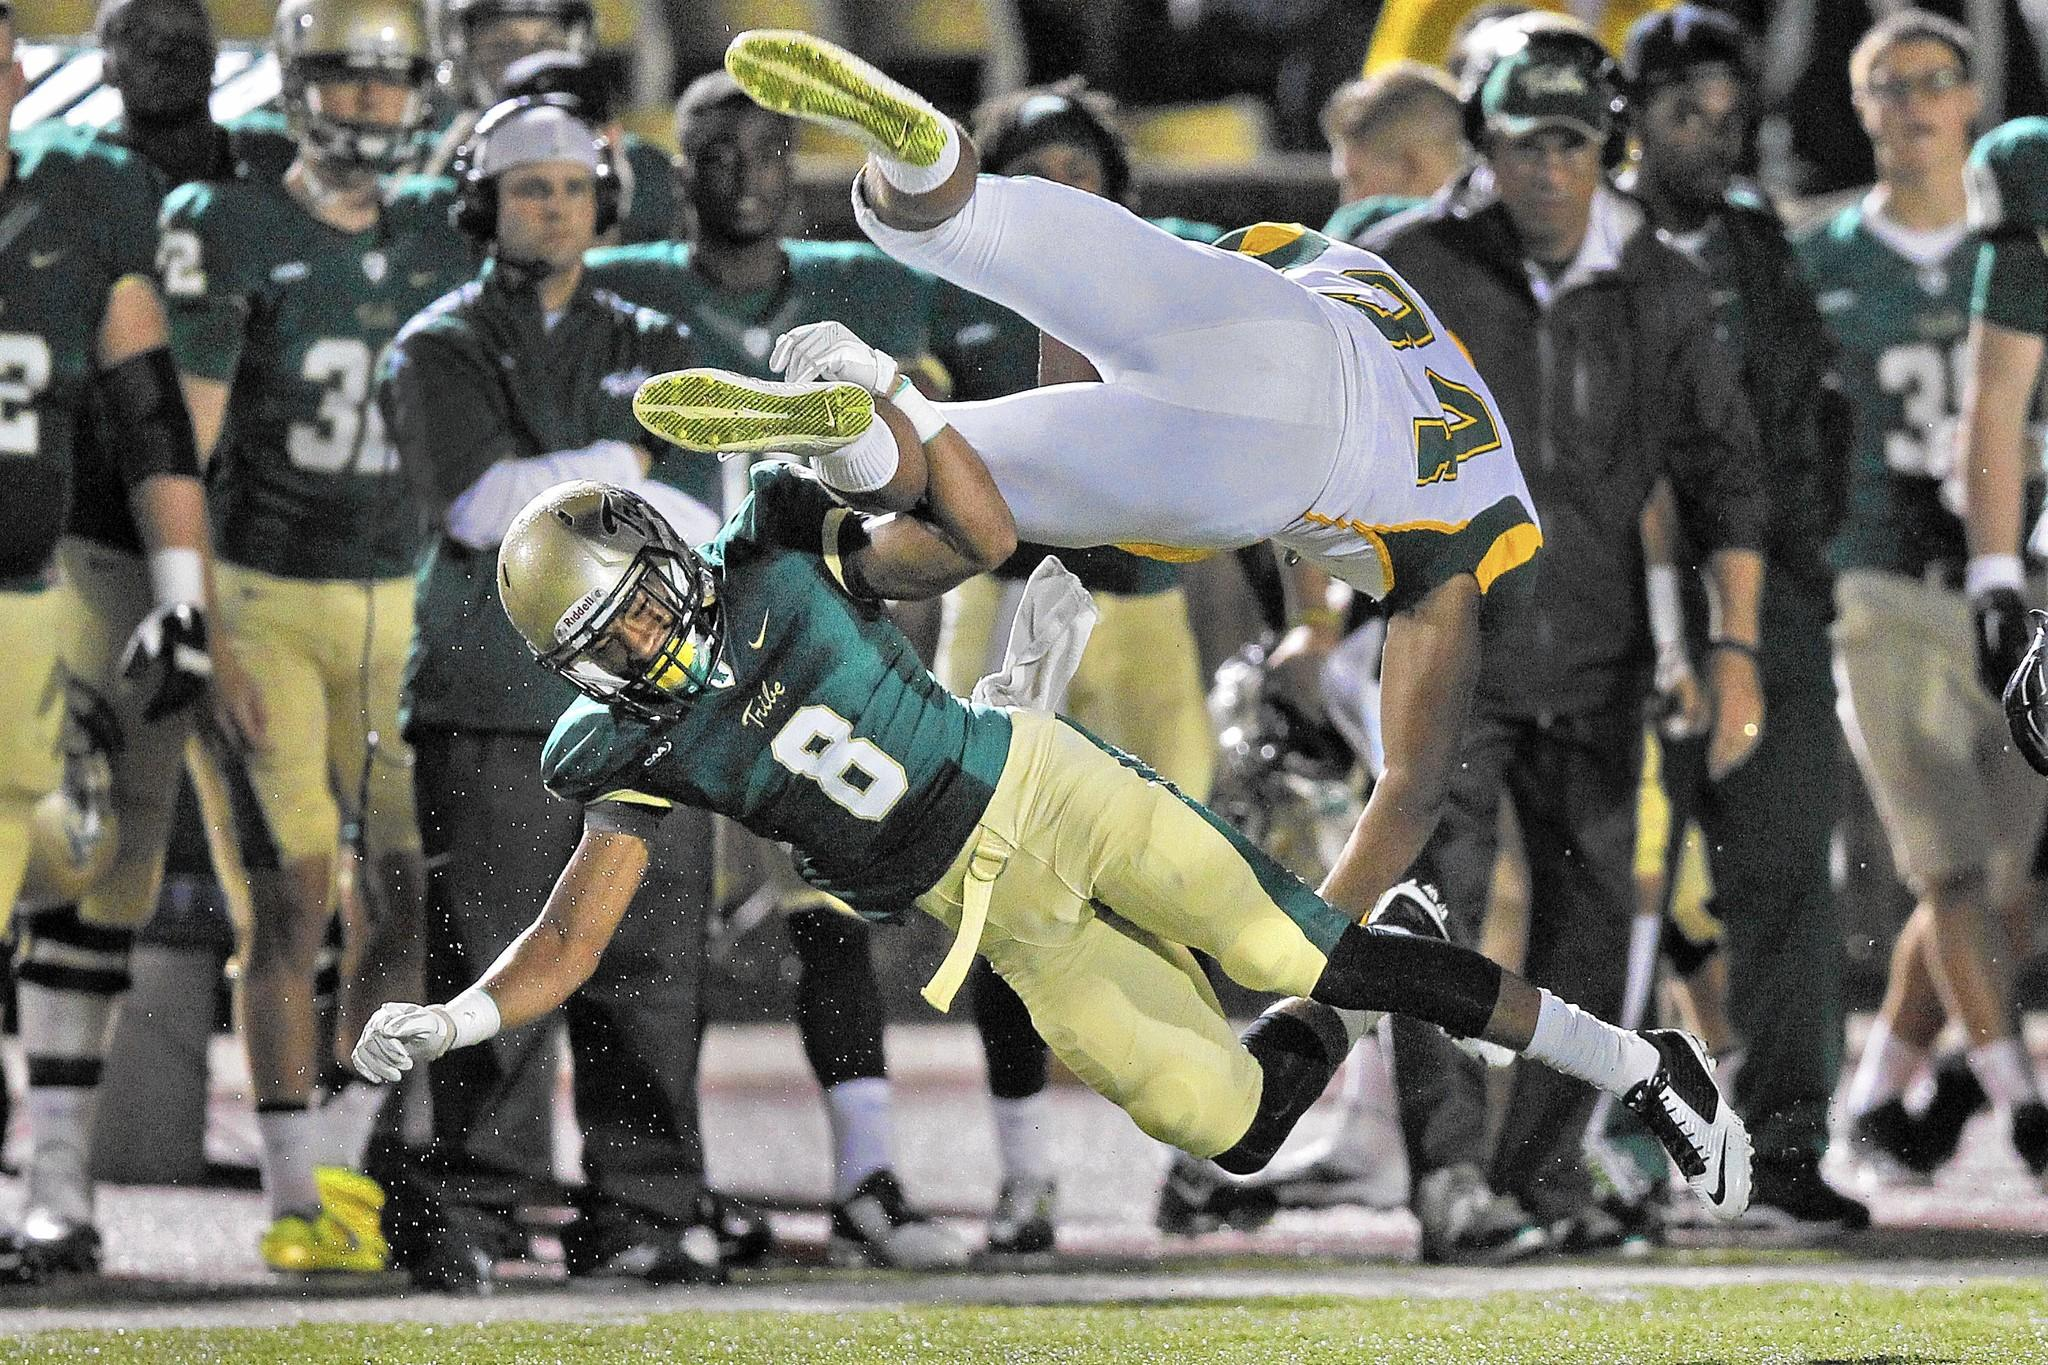 William and Mary's Trey Reed, bottom, tackles and sends Norfolk State's Aaron Daniels into the air during Saturday's game at Zable Stadium.